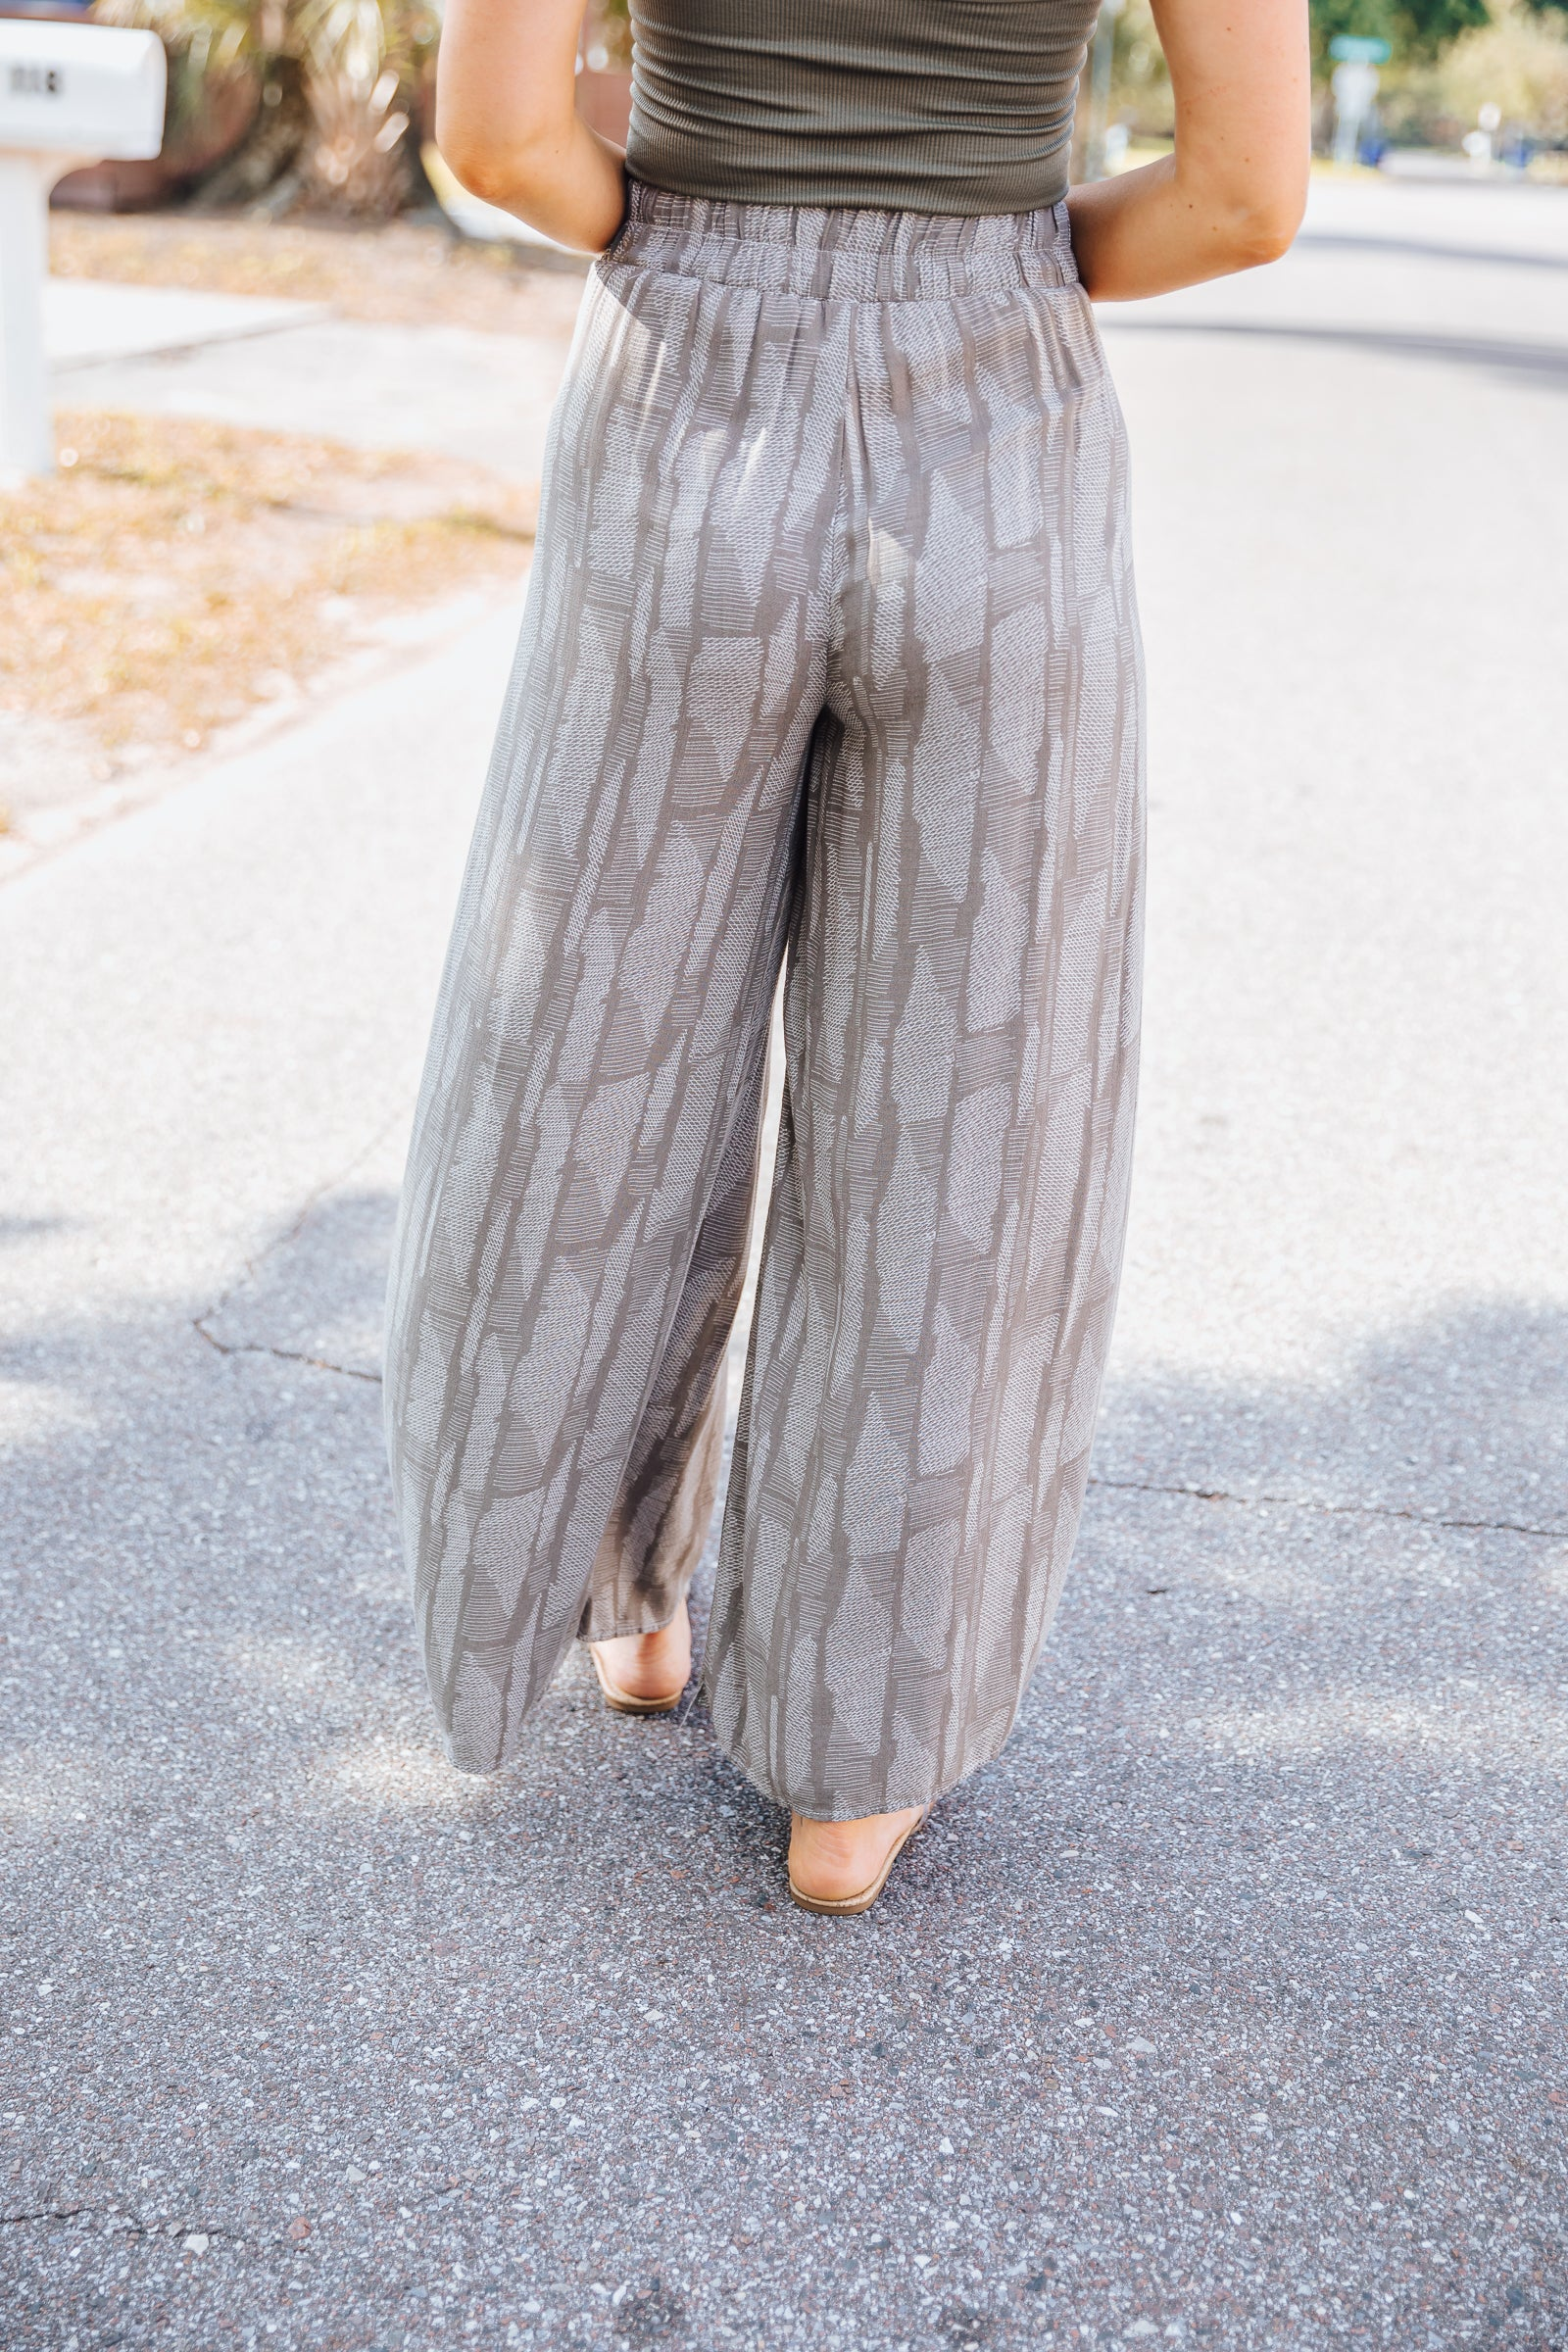 White prints cover the fabric of these lightweight pants. It has an elastic waistband meeting side panels that ties in the front and then flows into long and wide pant legs.